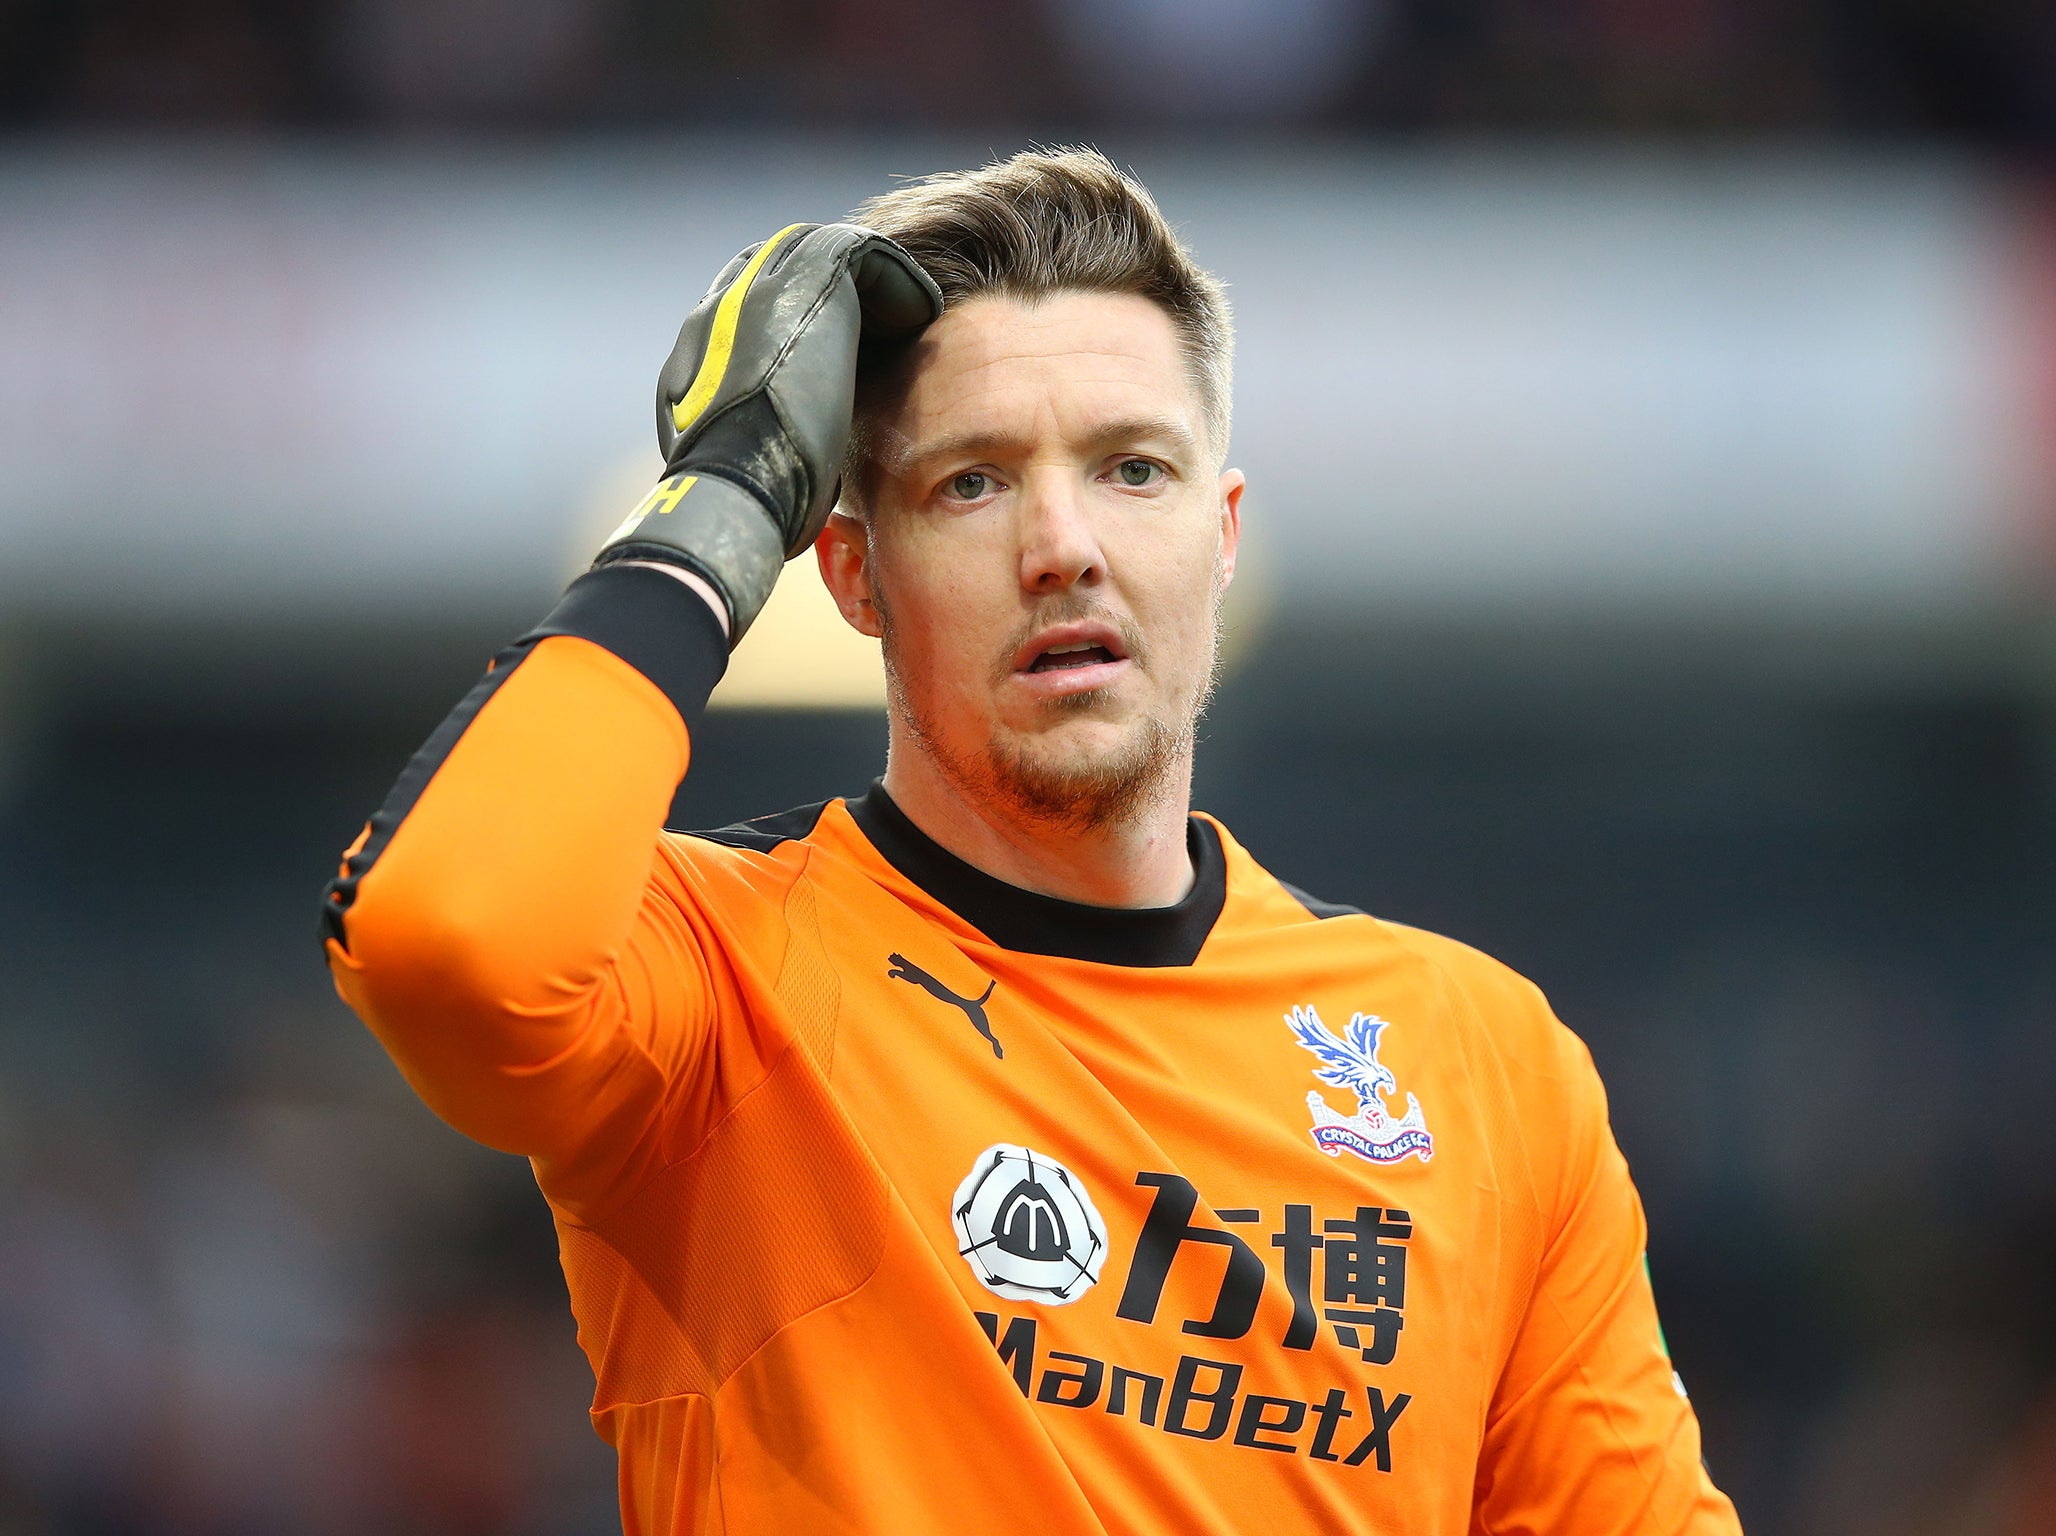 Wayne Hennessey 'desperate' to learn about Nazis after gesture controversy, says Roy Hodgson